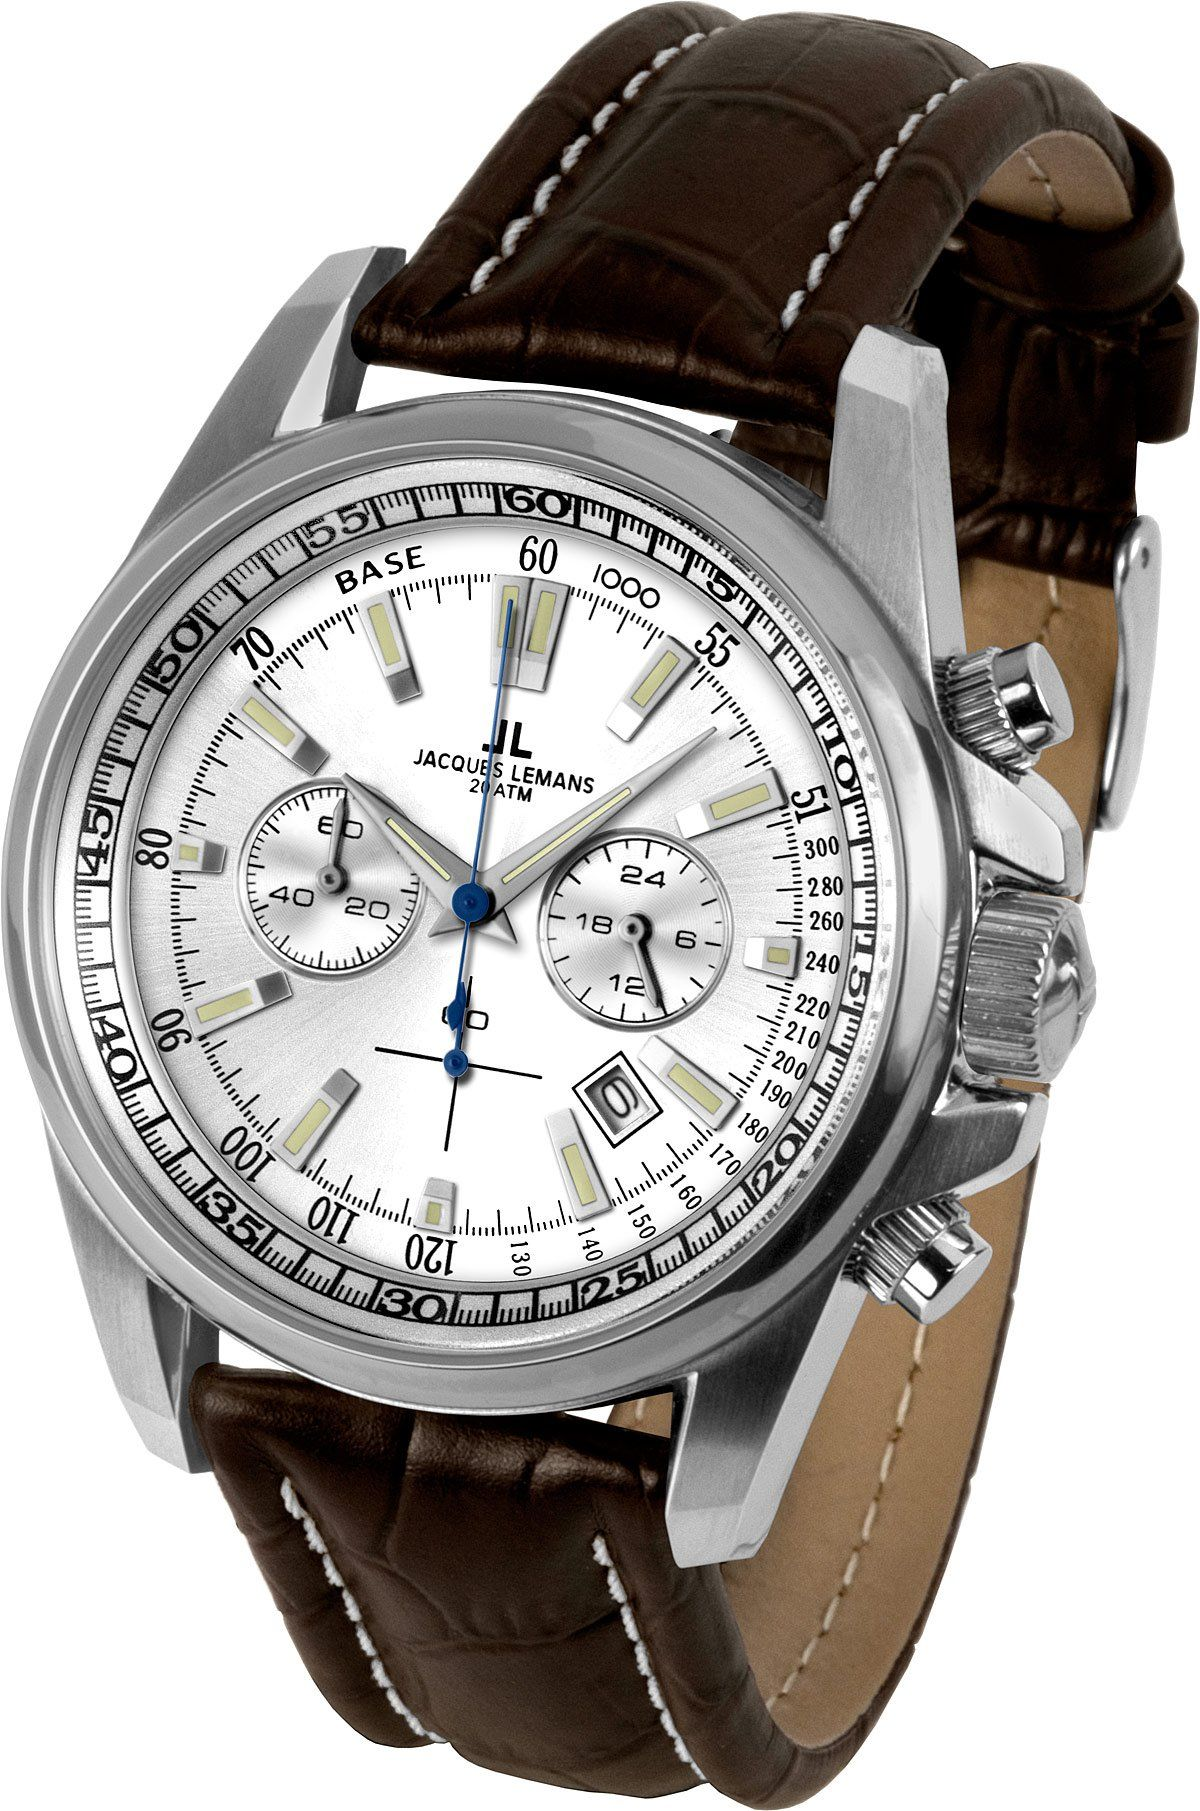 ef85c8571 Jacques Lemans Liverpool 1-1117BN Men's Chronograph Brown Leather Strap  Watch: Amazon.co.uk: Watches